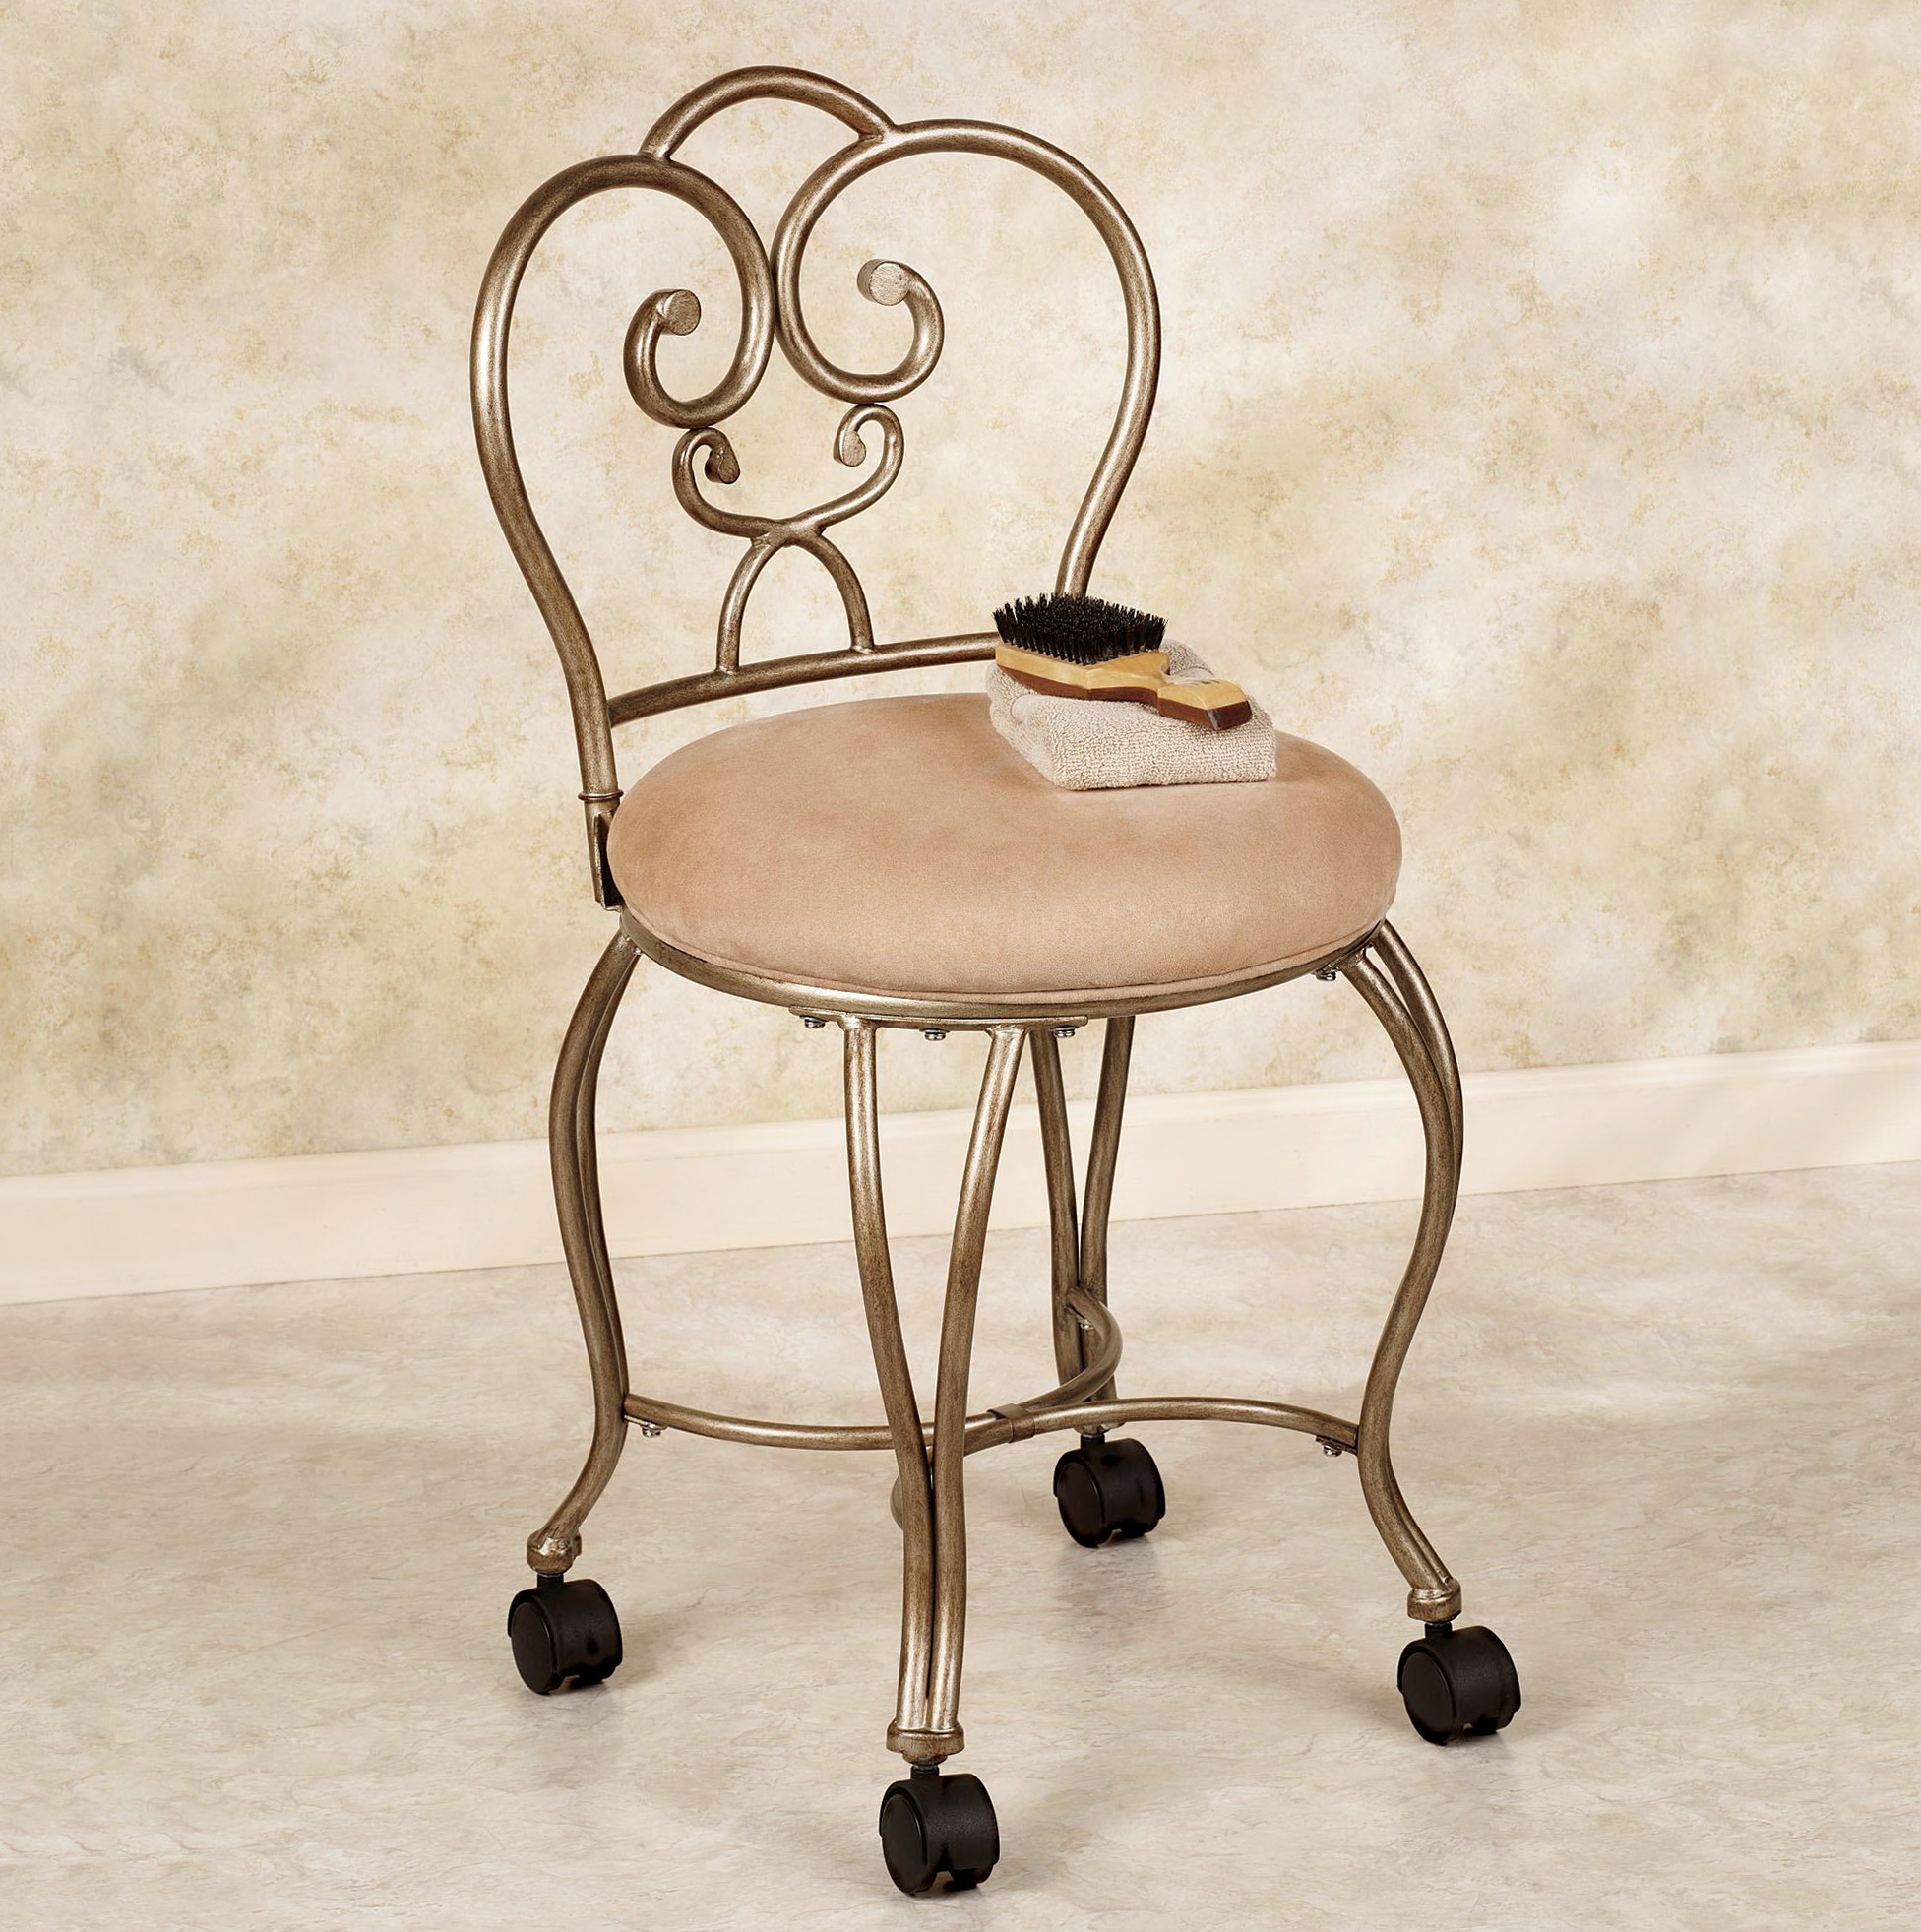 Vanity Chair For Bathroom With Wheels Home Design Ideas